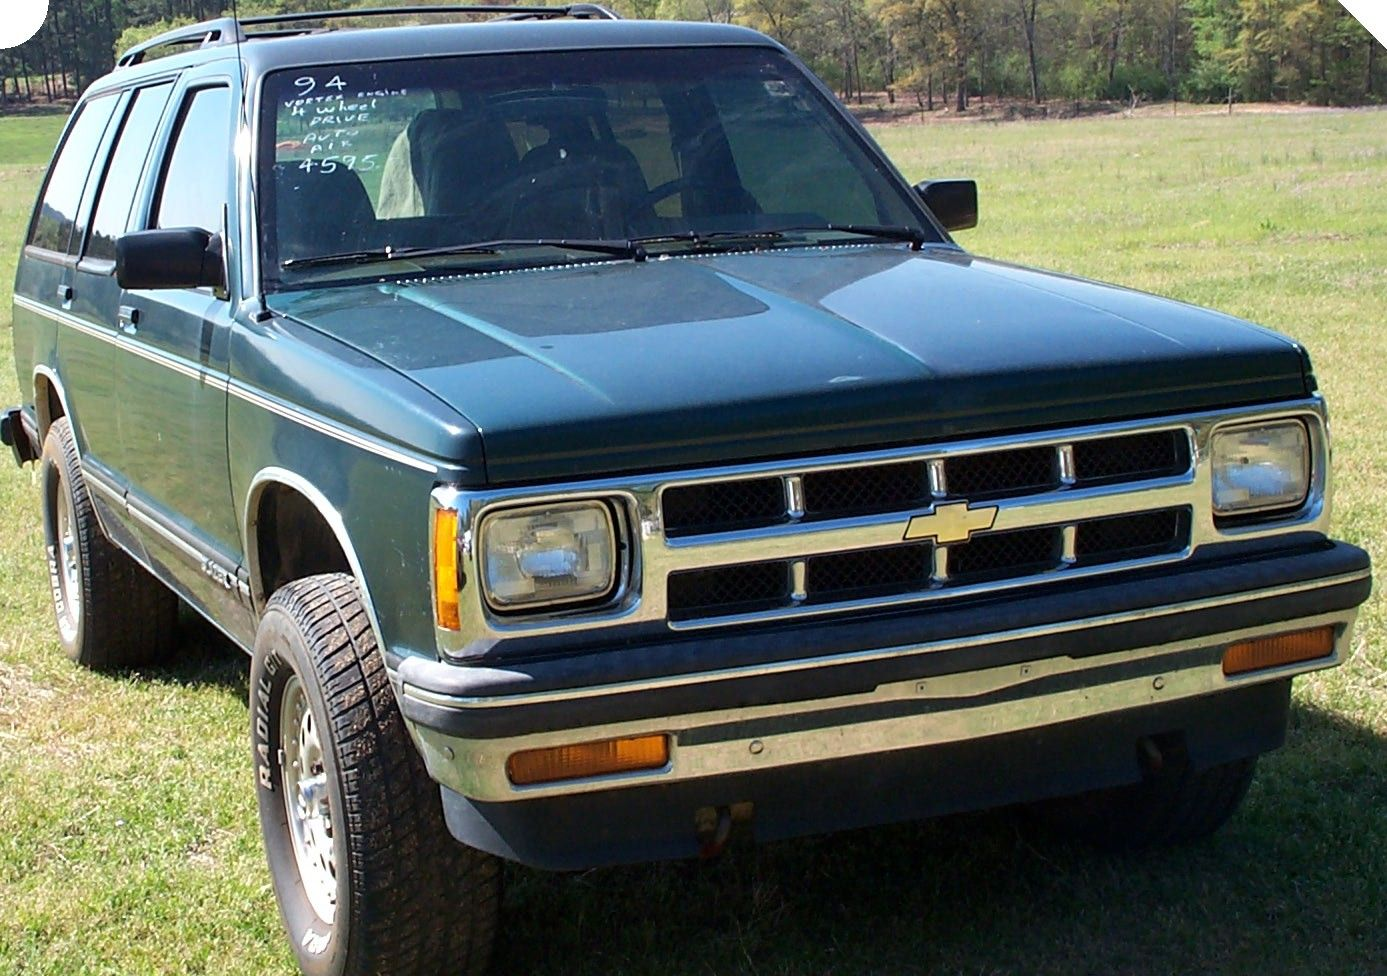 My 13th car, 1994 Chevrolet Blazer S10, with leather seats ...